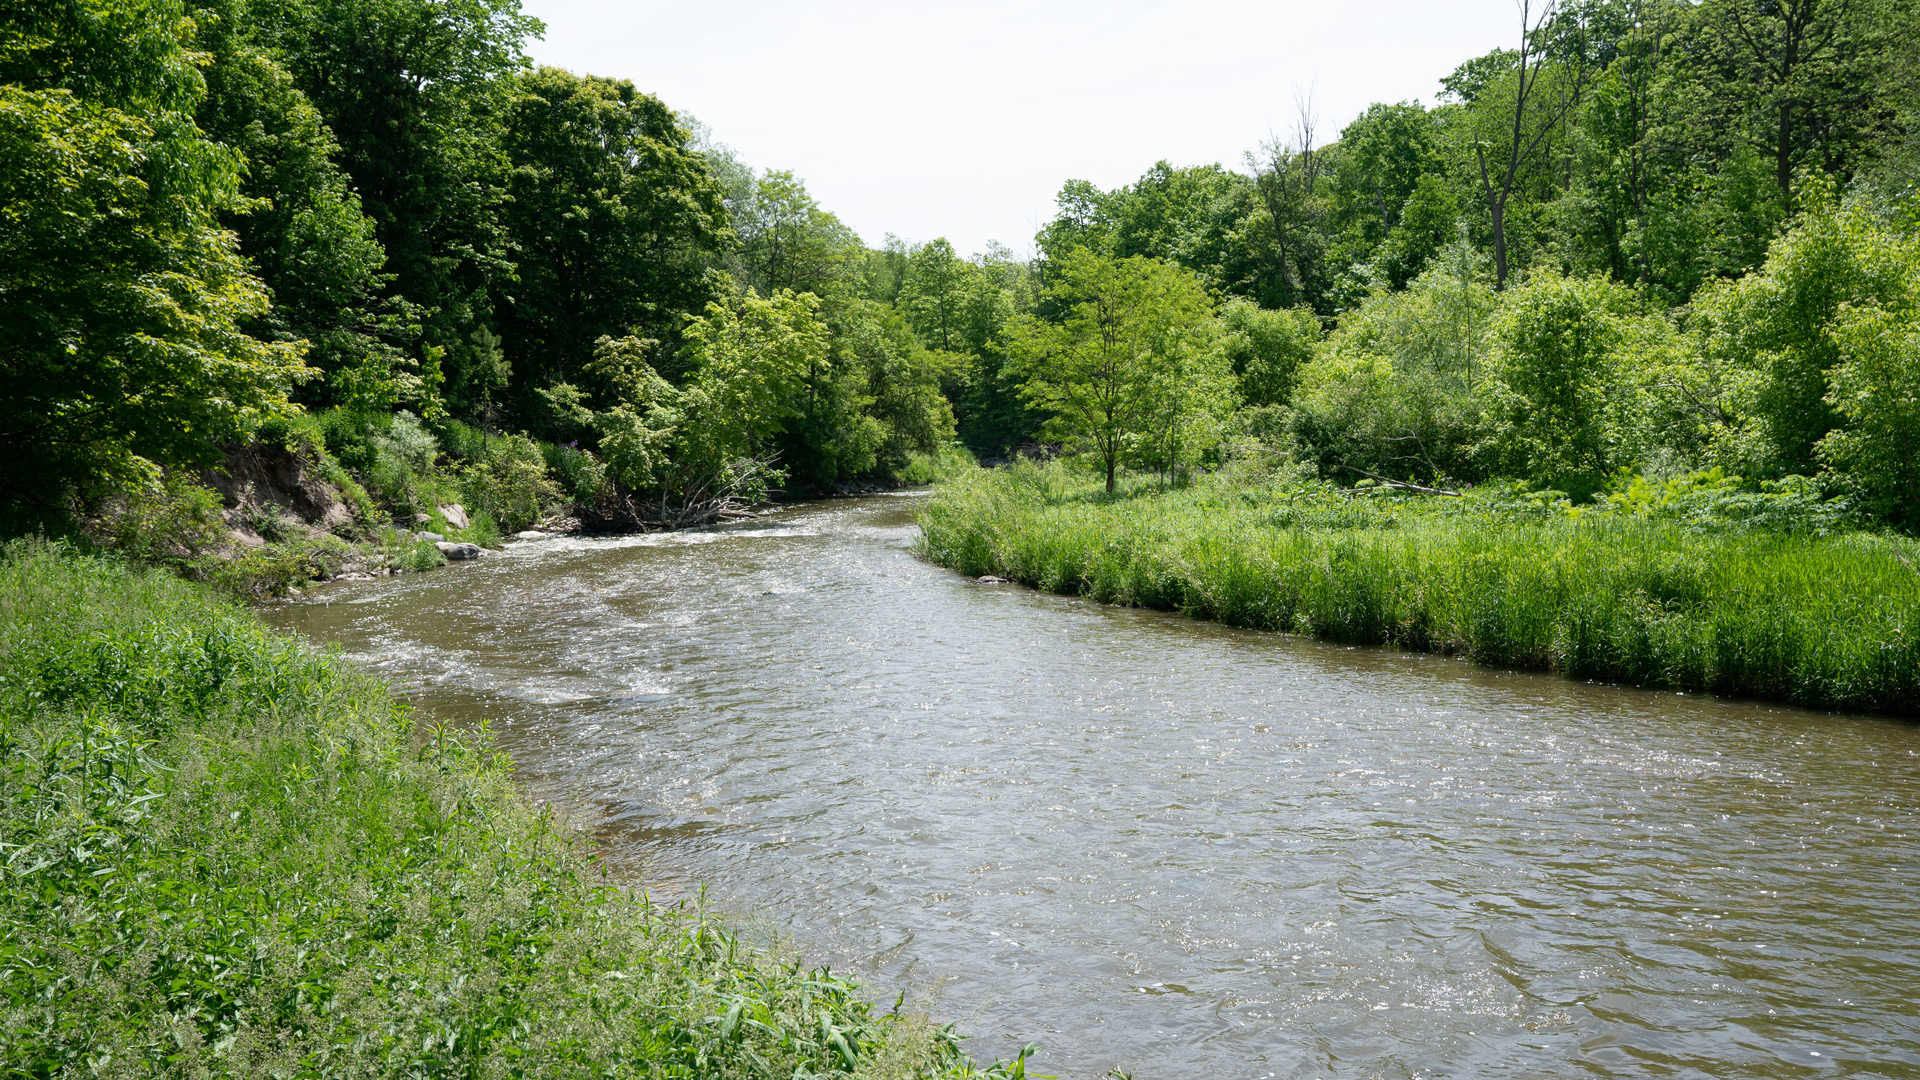 Schitts Creek 3 - River and green landscape